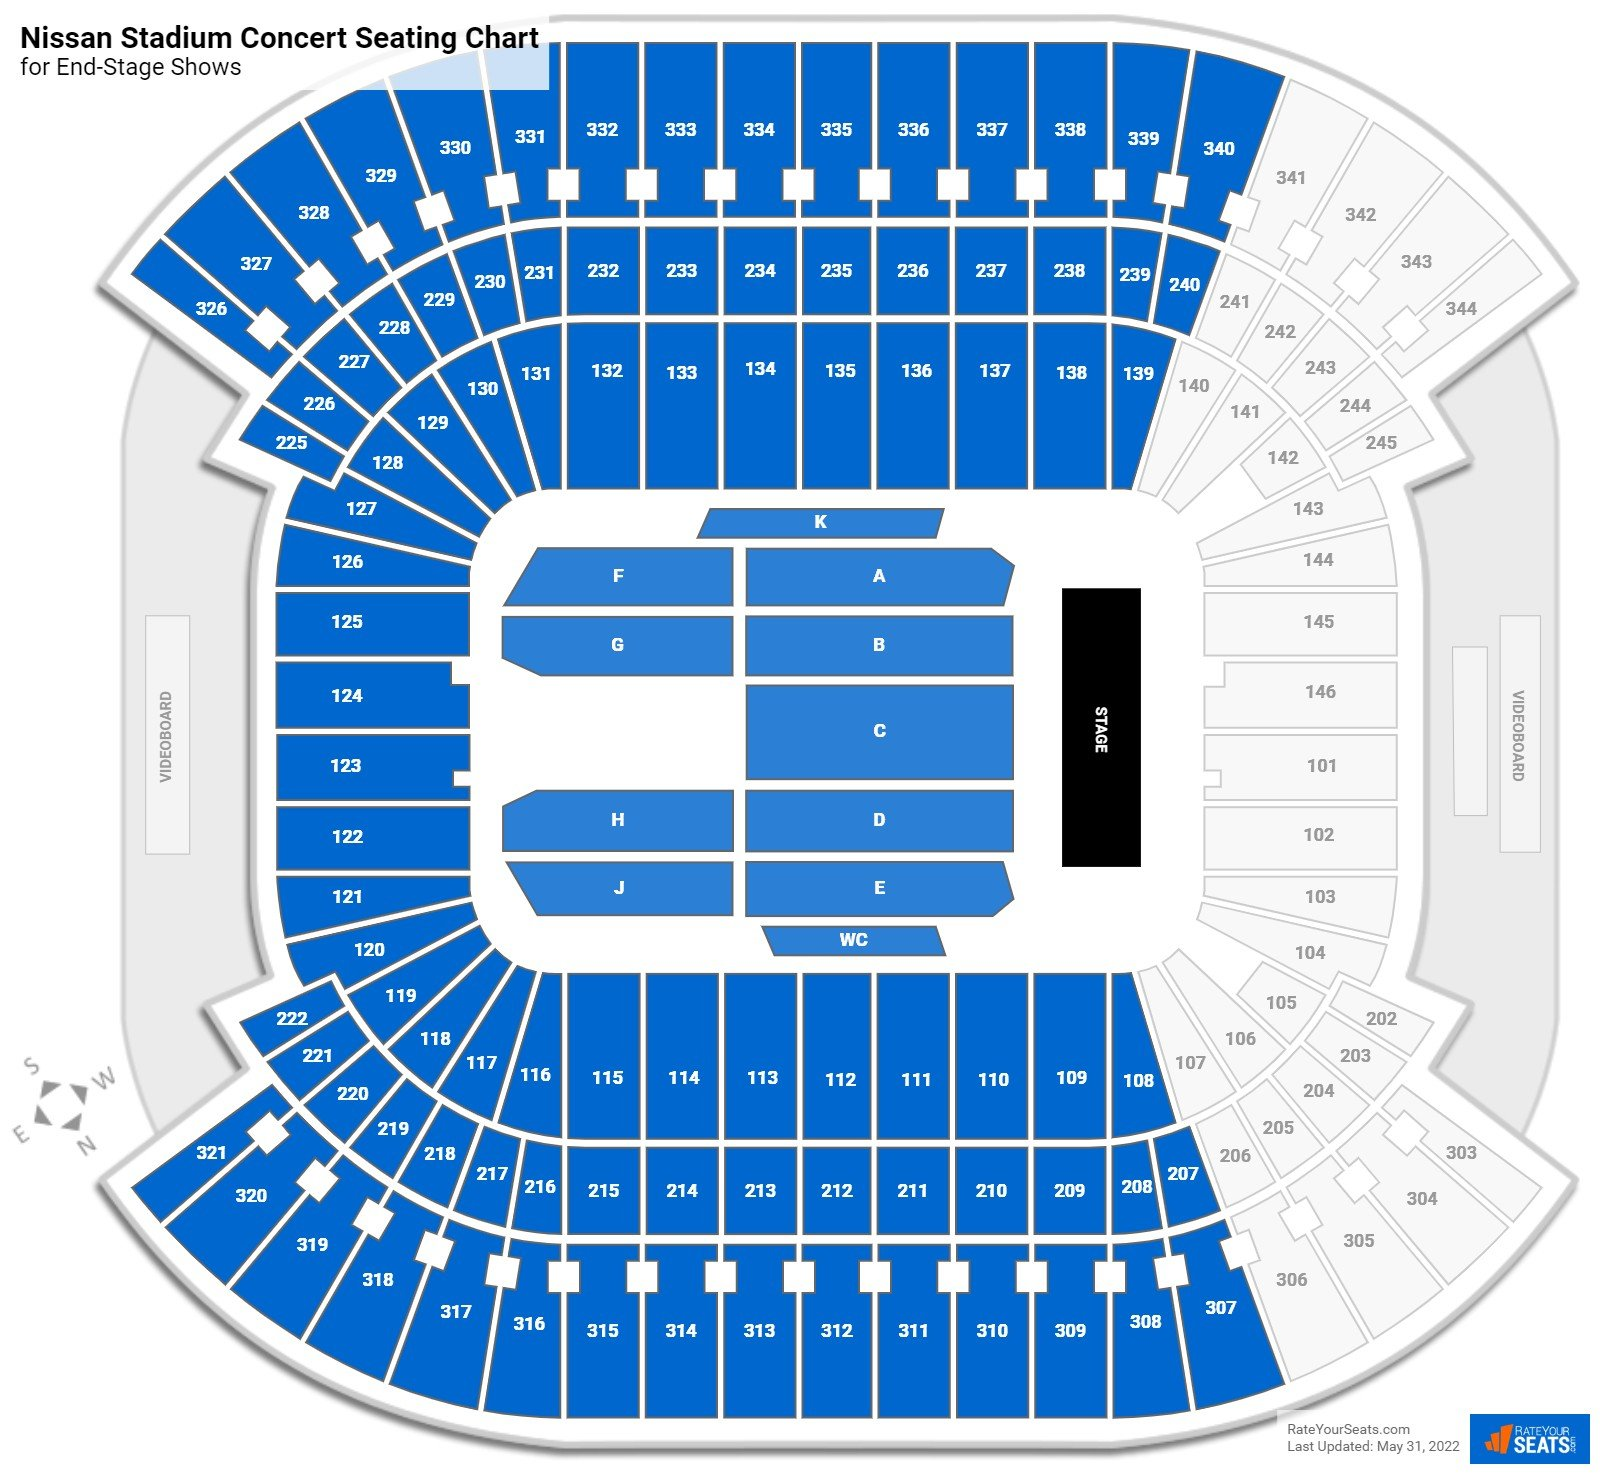 Nissan Stadium Seating Chart for Concerts